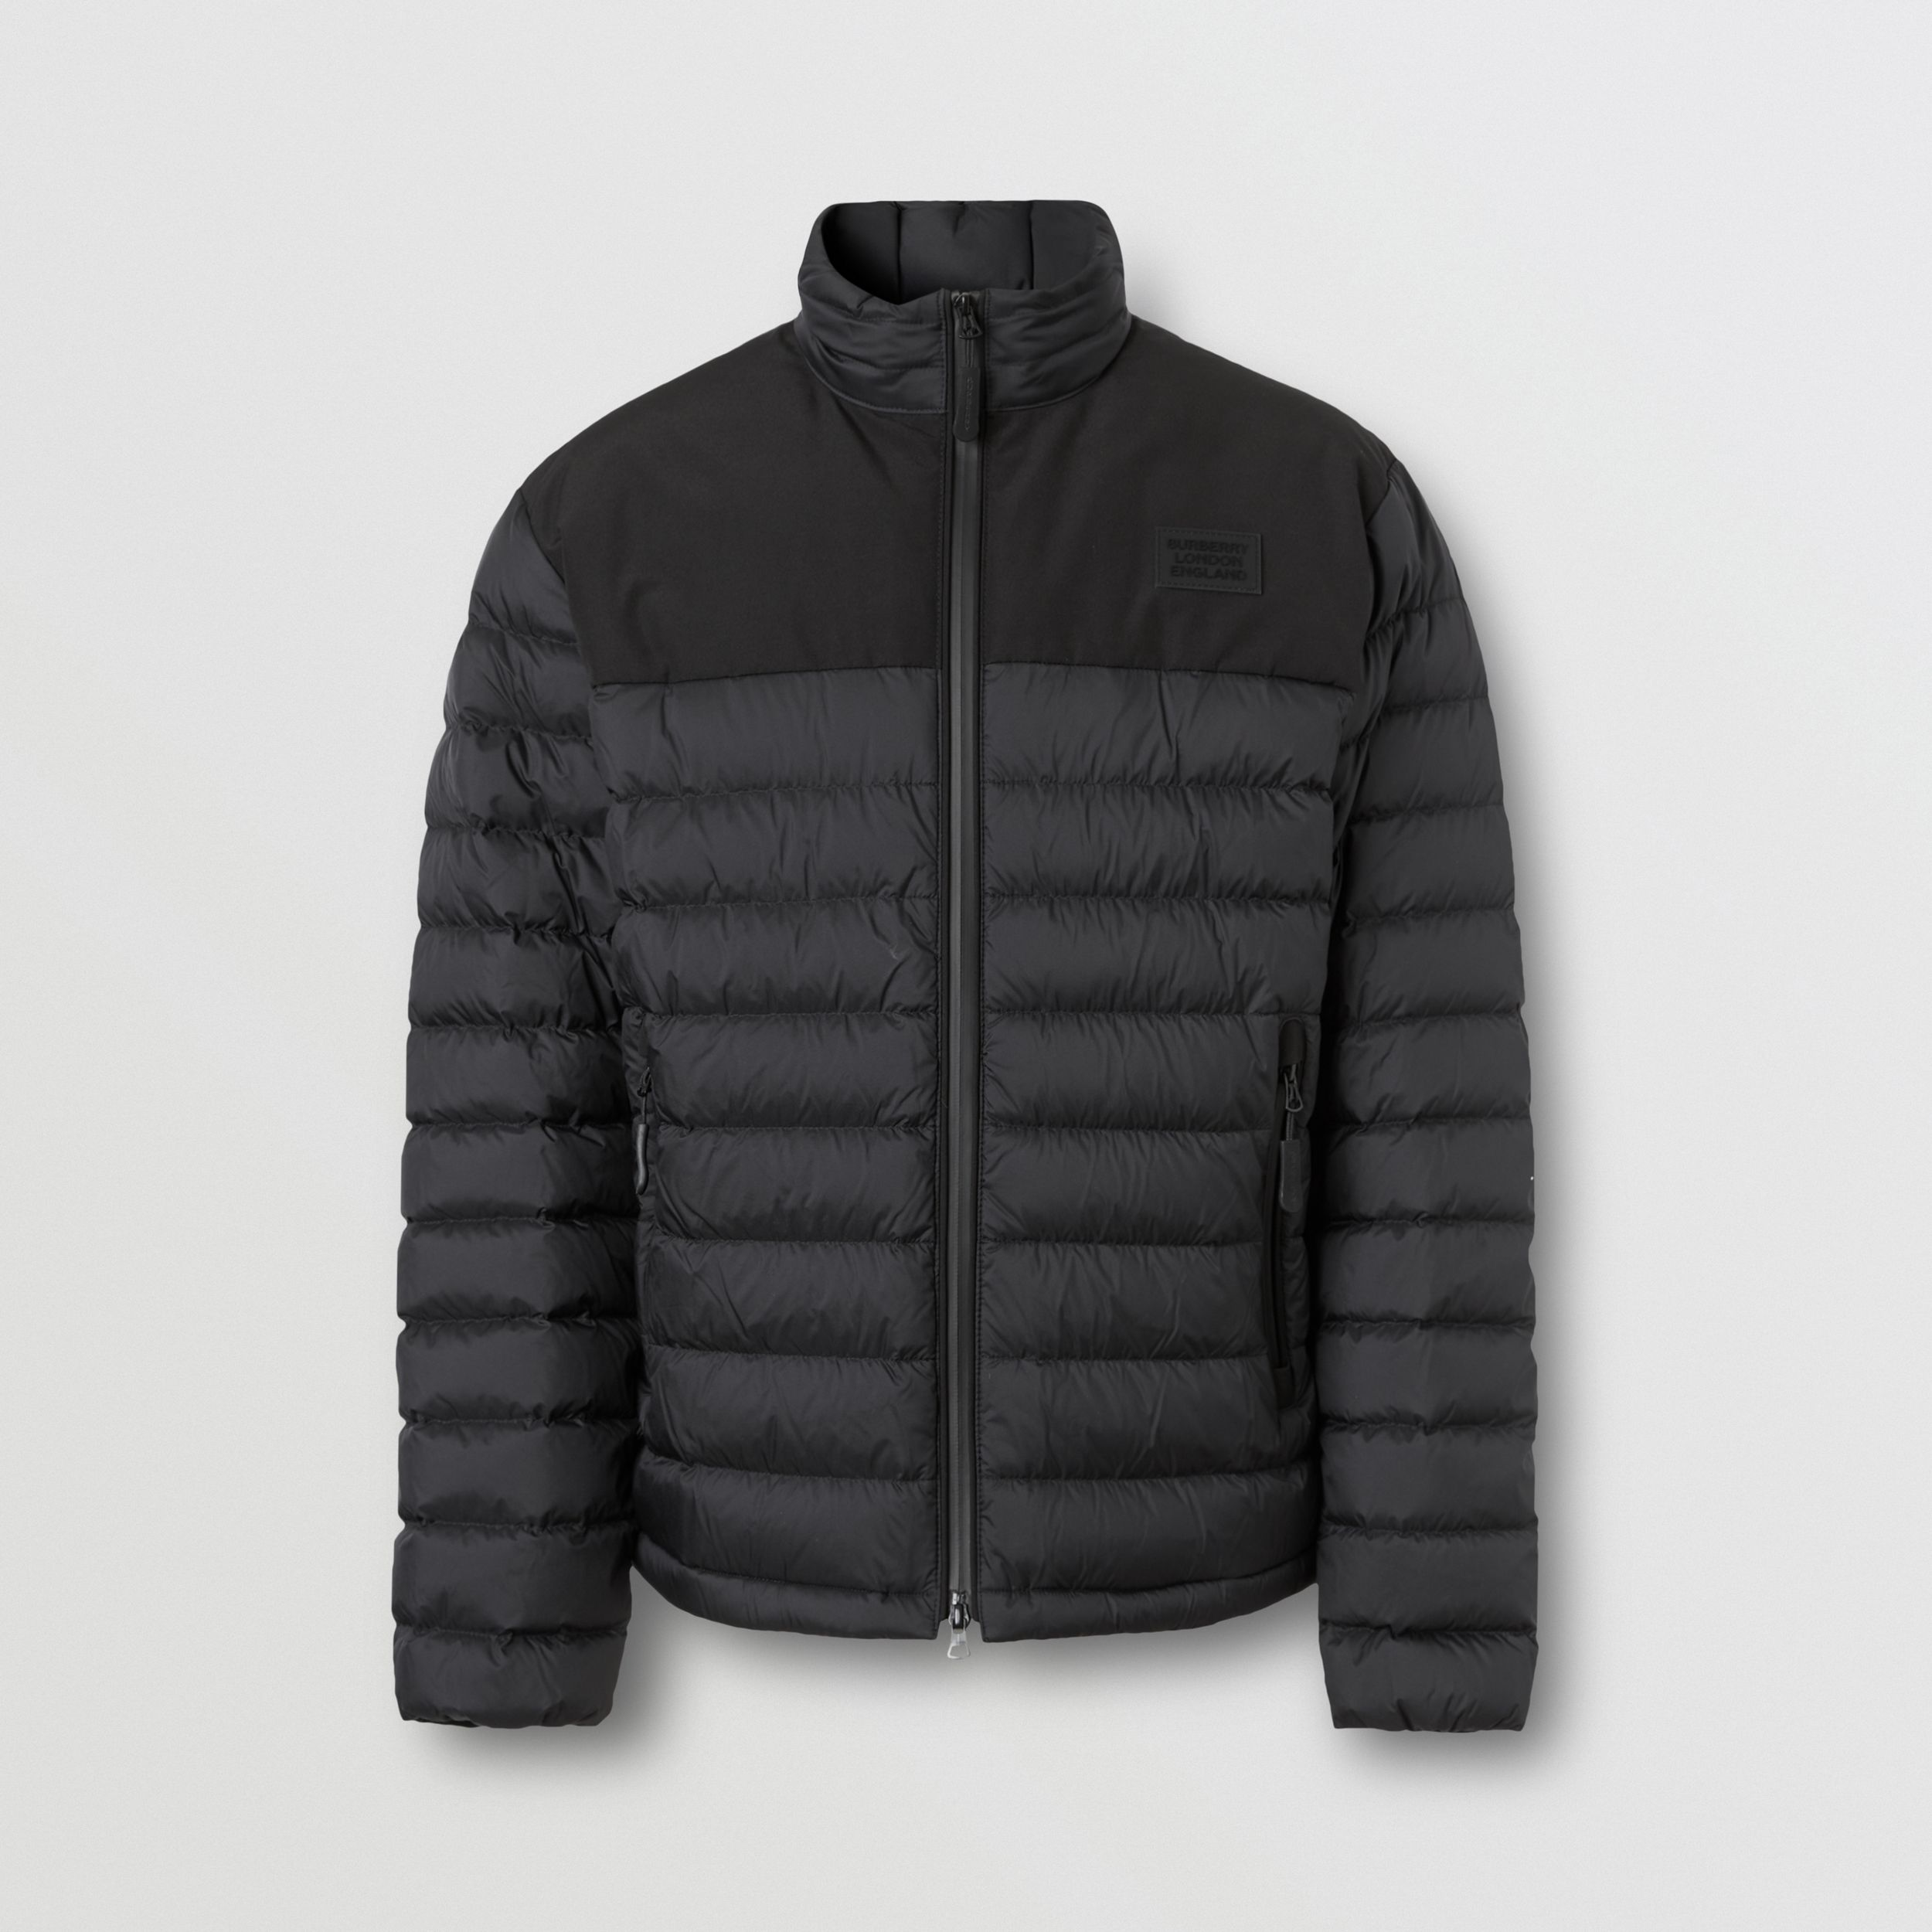 Logo Appliqué Lightweight Puffer Jacket in Black - Men | Burberry - 4